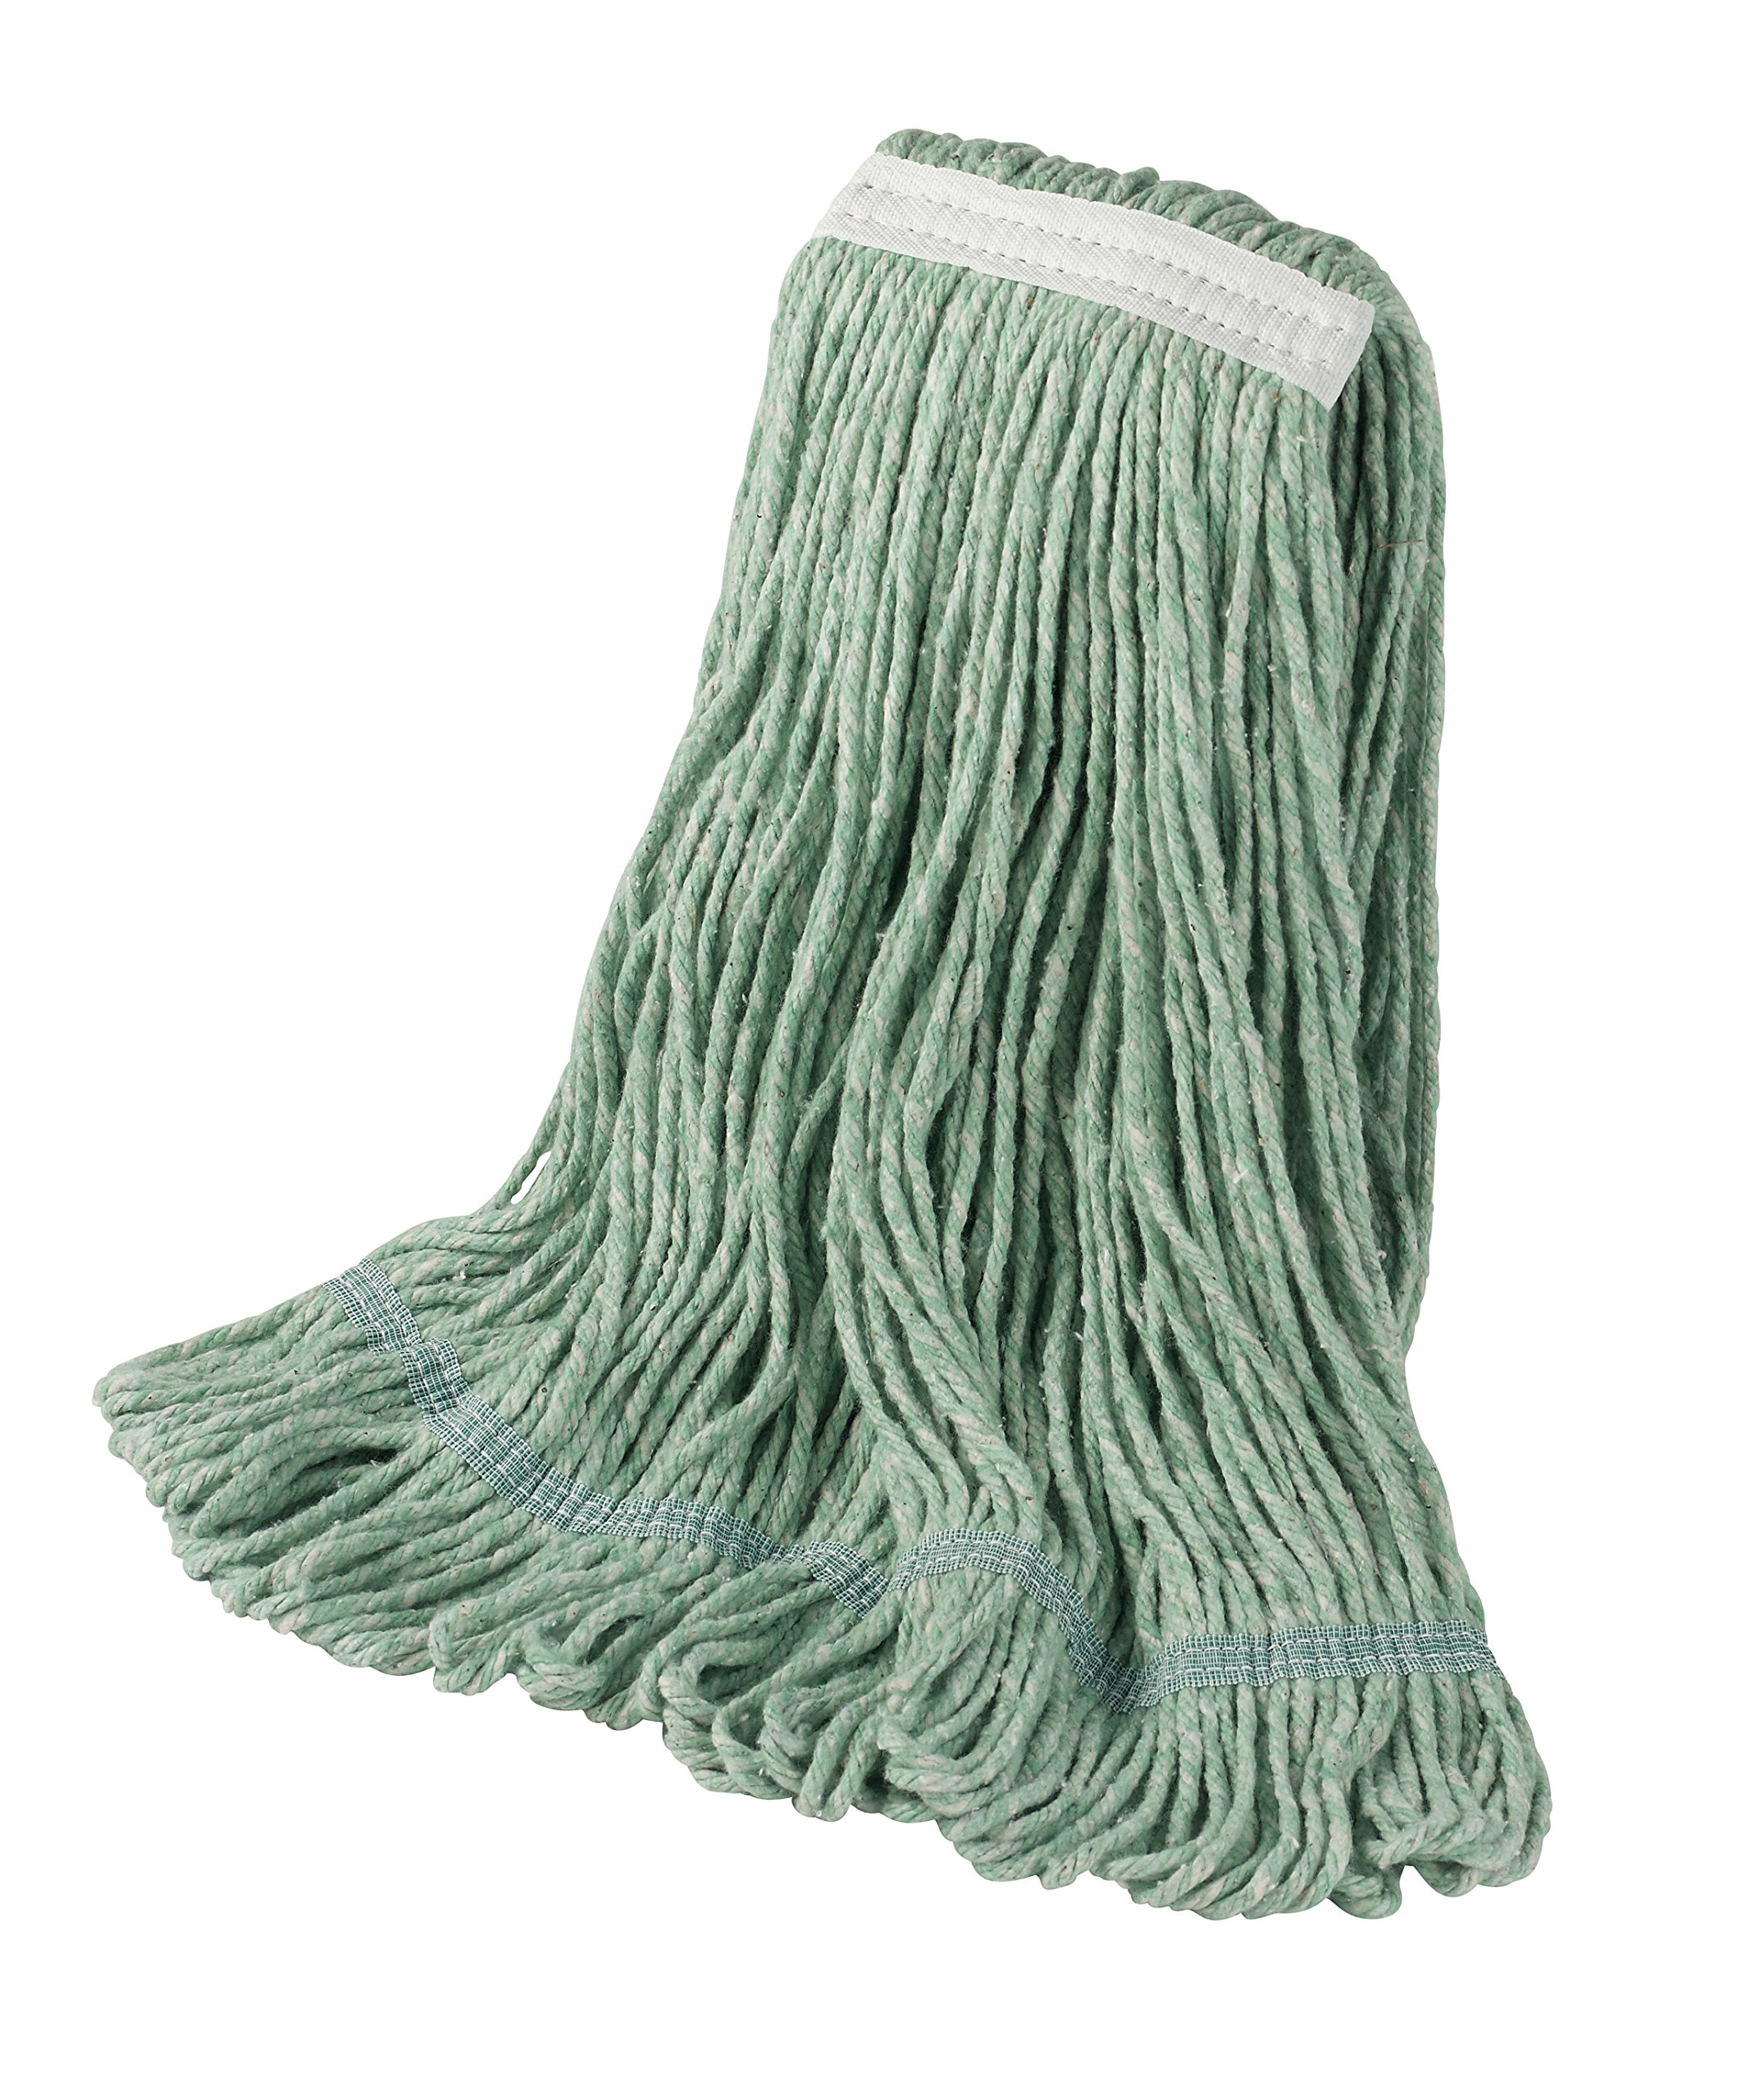 Bristles Wet Mop Head Loop End 1 Inch Narrow Headband 4 Ply Cotton Synthetic Yarn, Pack of 12 (Large, Green)